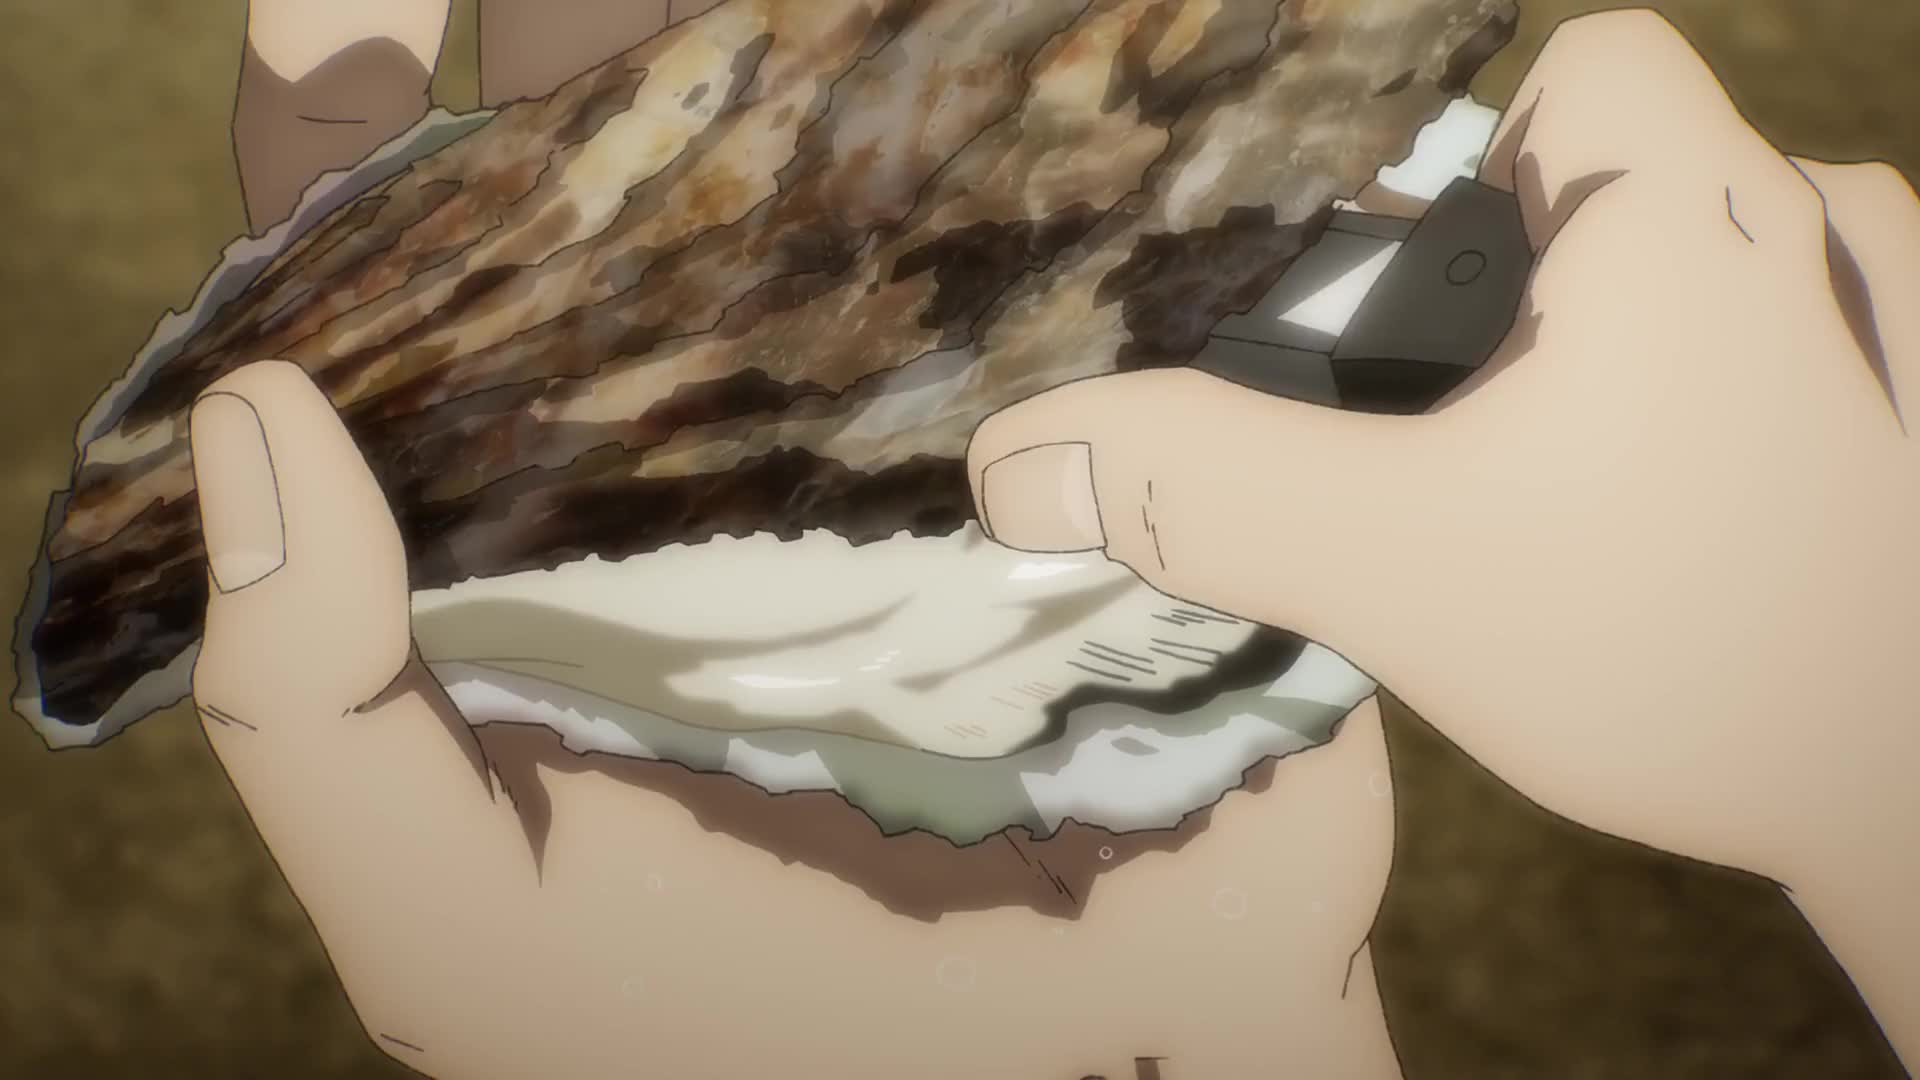 Shingeki no Kyojin: The Final Season - Episode 11